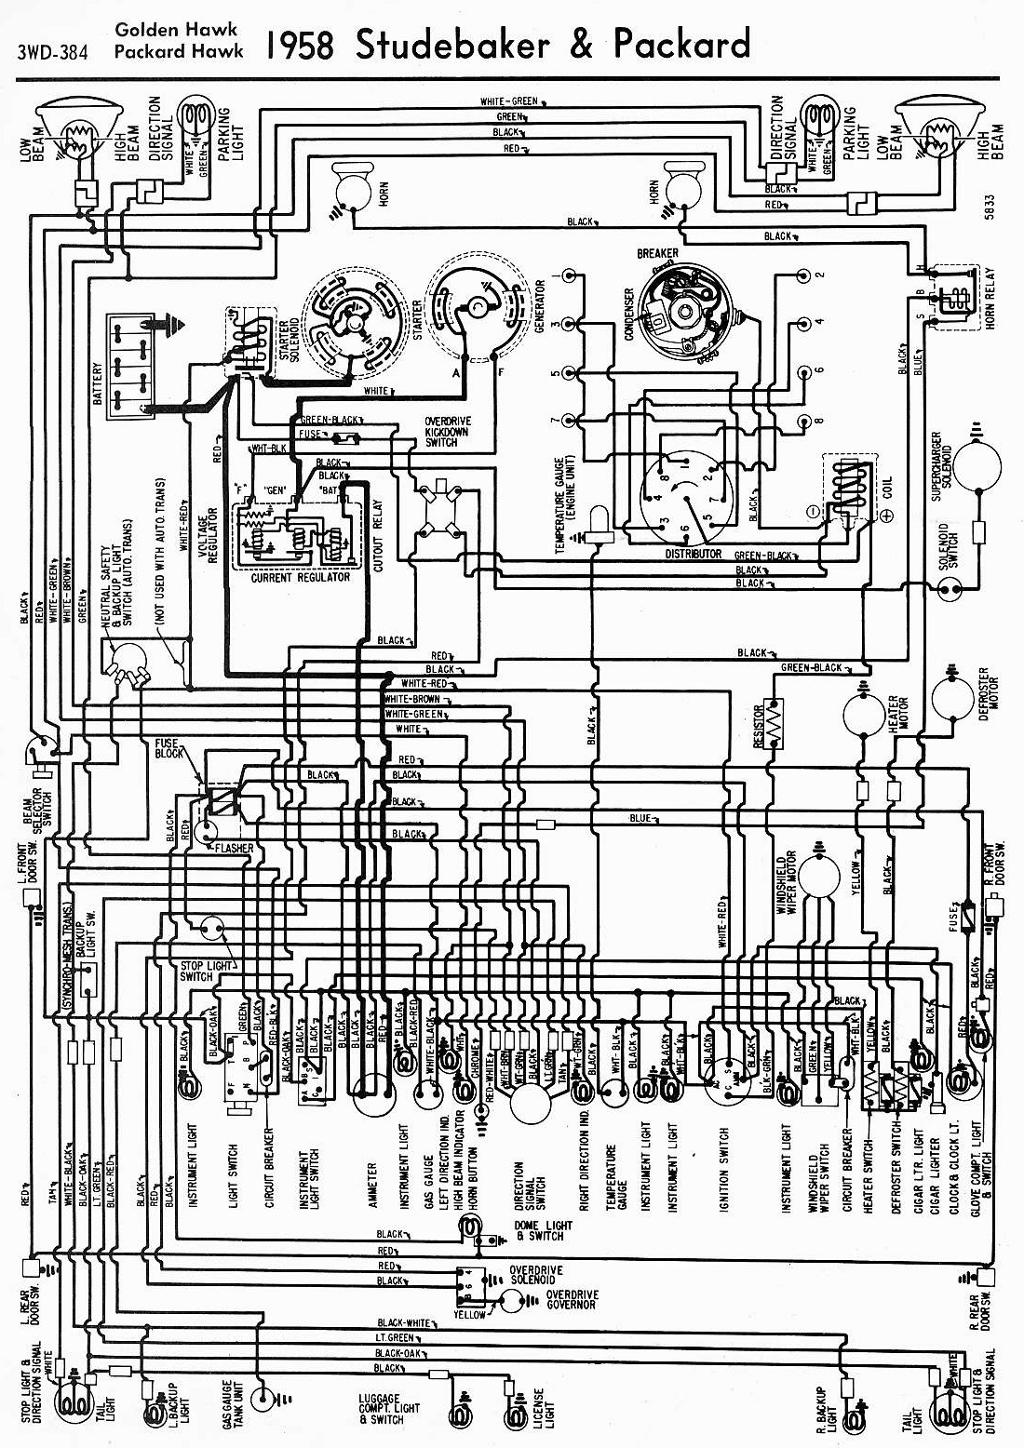 1948 packard wiring diagram wiring diagram third level 1949 ford wiring diagram 1948 studebaker wiring diagram [ 1024 x 1448 Pixel ]